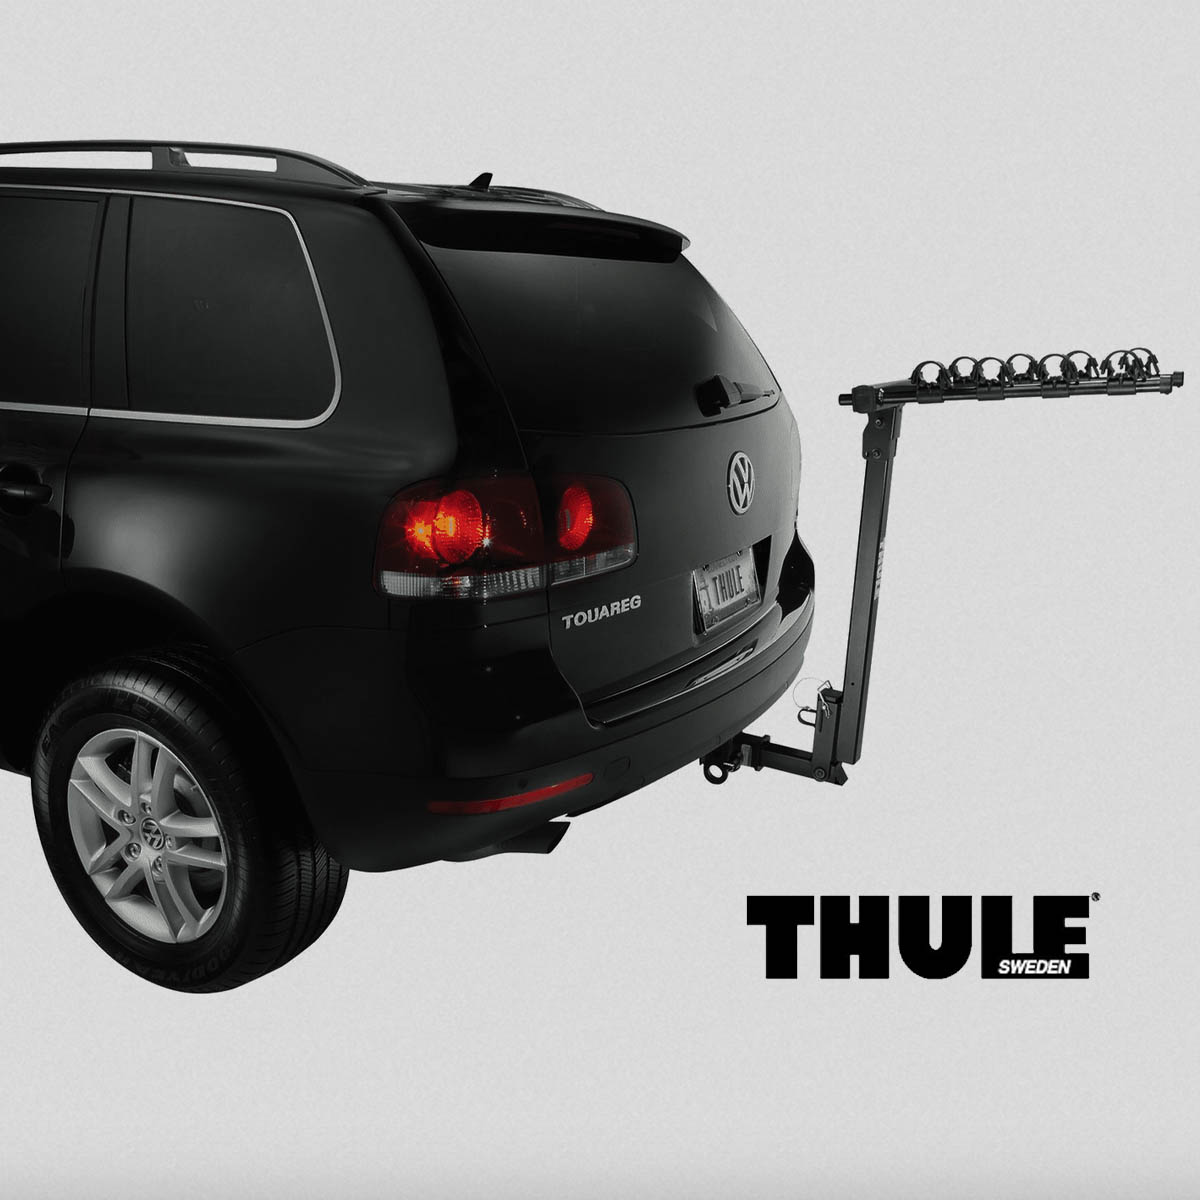 THULE hitch style rack - This Thule Parkway 957 hitch style bicycle rack will cary up to four cycles— perfect for the whole family! This well constructed bike rack, generously provided by the Gleason family, includes soft rubber cradles to protect the frame while keeping each bike secure.Retail Value: $240.00